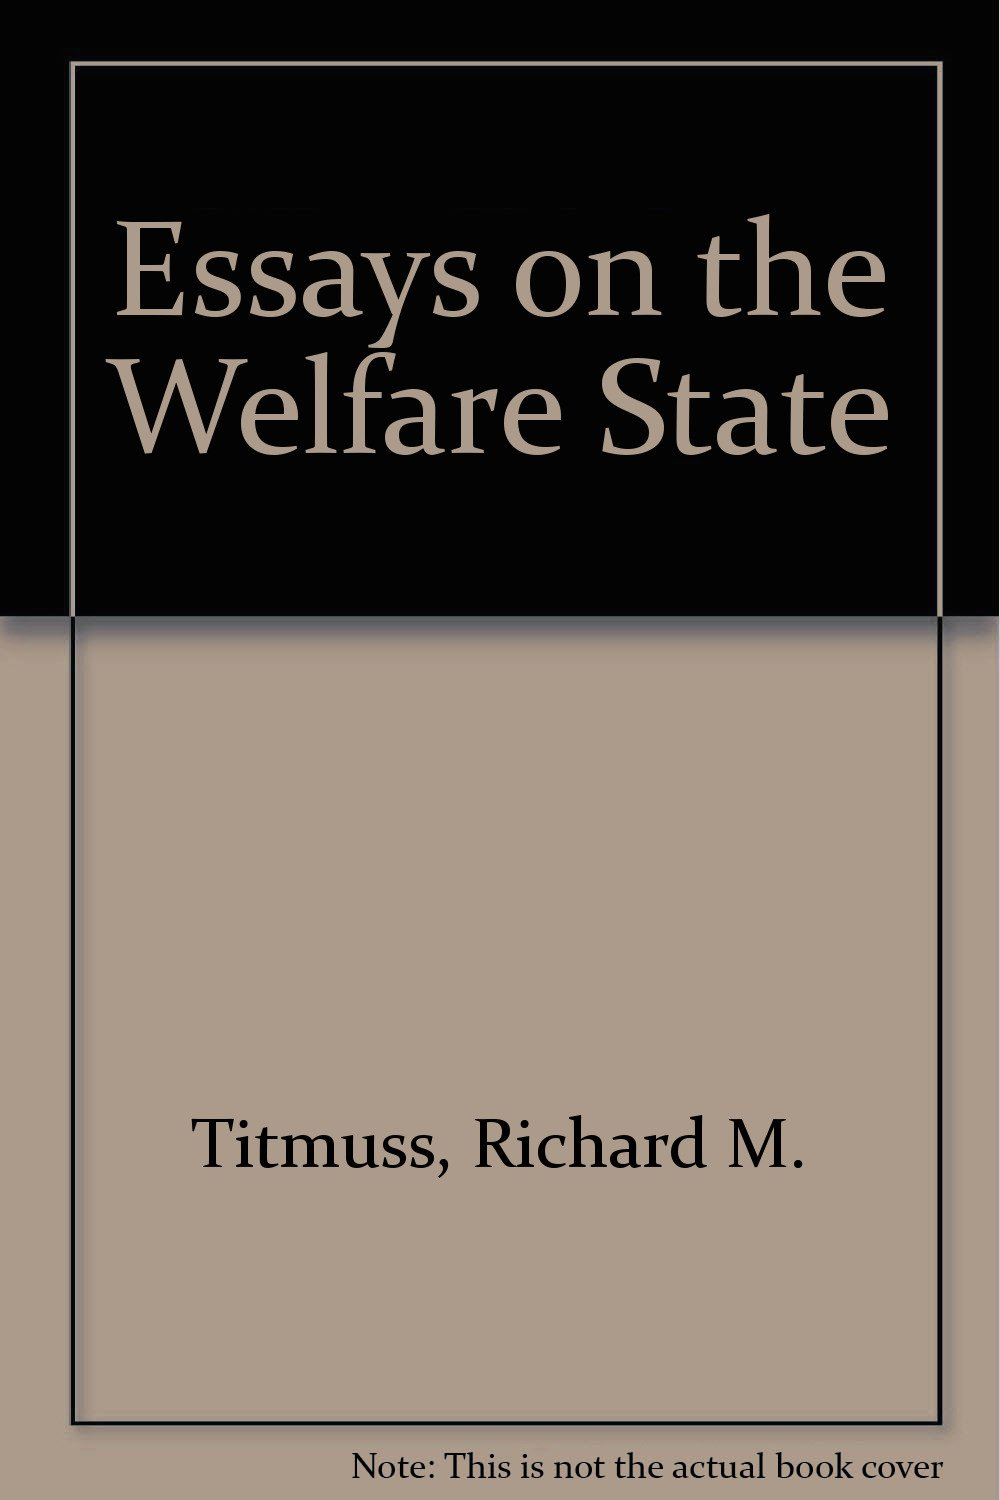 richard titmuss essays on the welfare state Richard morris titmuss there is also now a richard titmuss chair in social policy at the lse essays on the welfare state, r m titmuss.